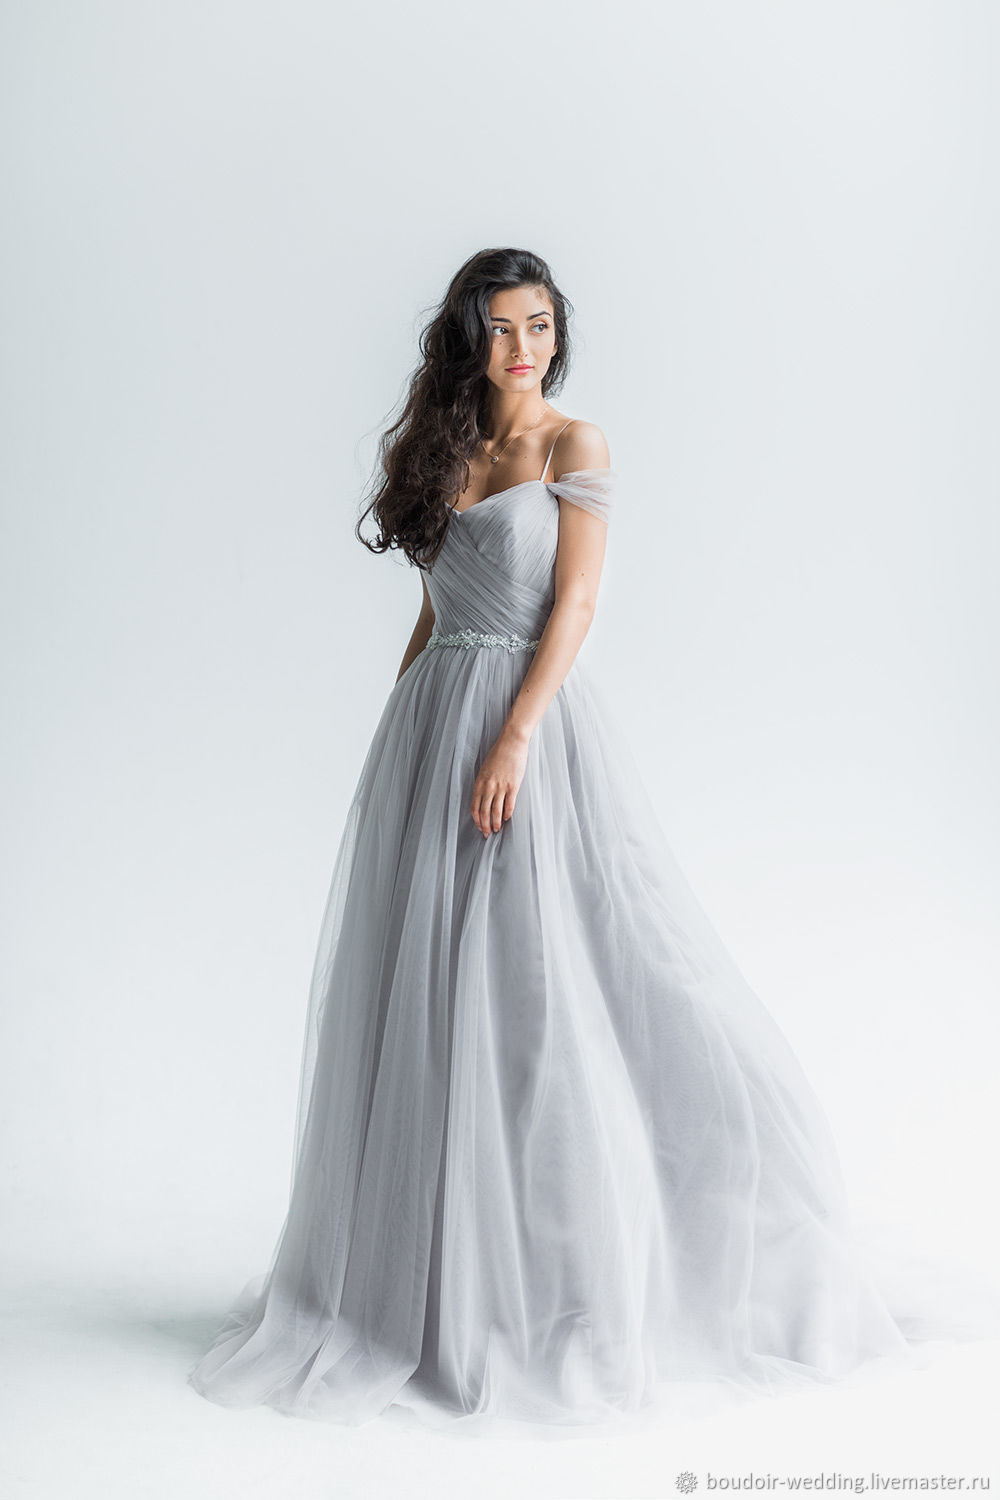 Dusty grey wedding dress trudy shop online on livemaster with wedding dress trudy made of draped tulle dusty gray hue will beautifully accentuate the figure junglespirit Images